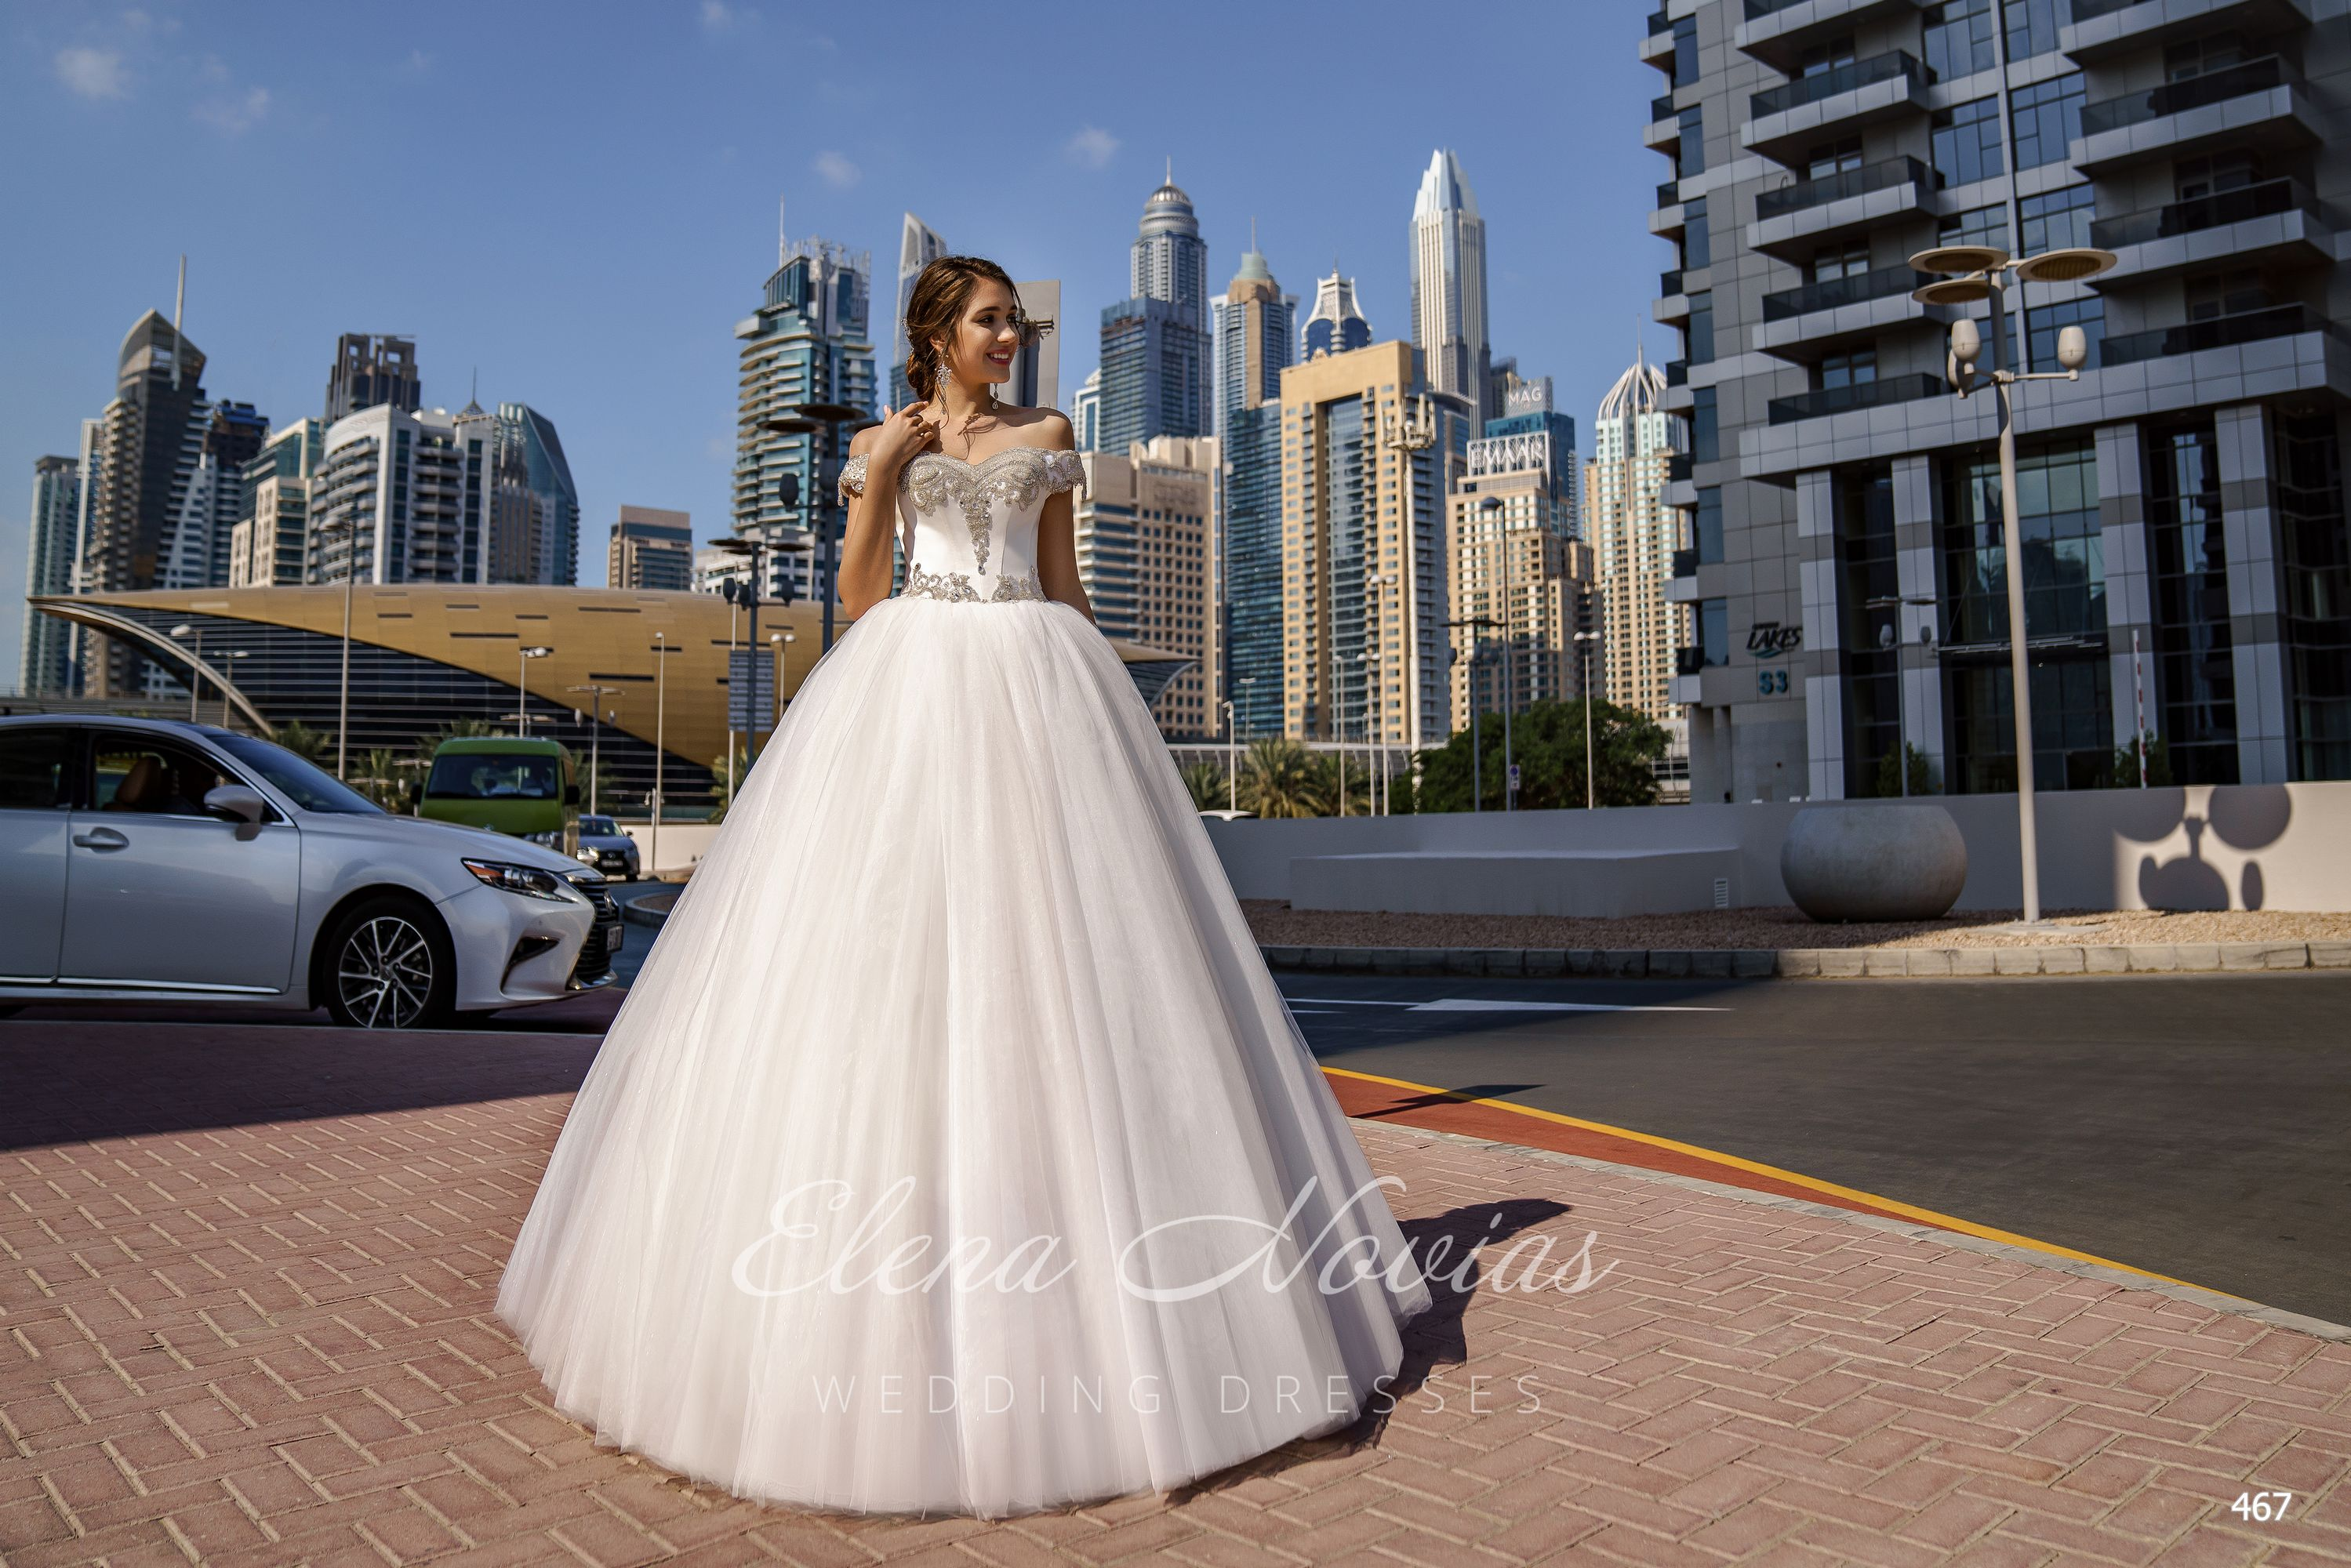 Wedding dresses 467 3